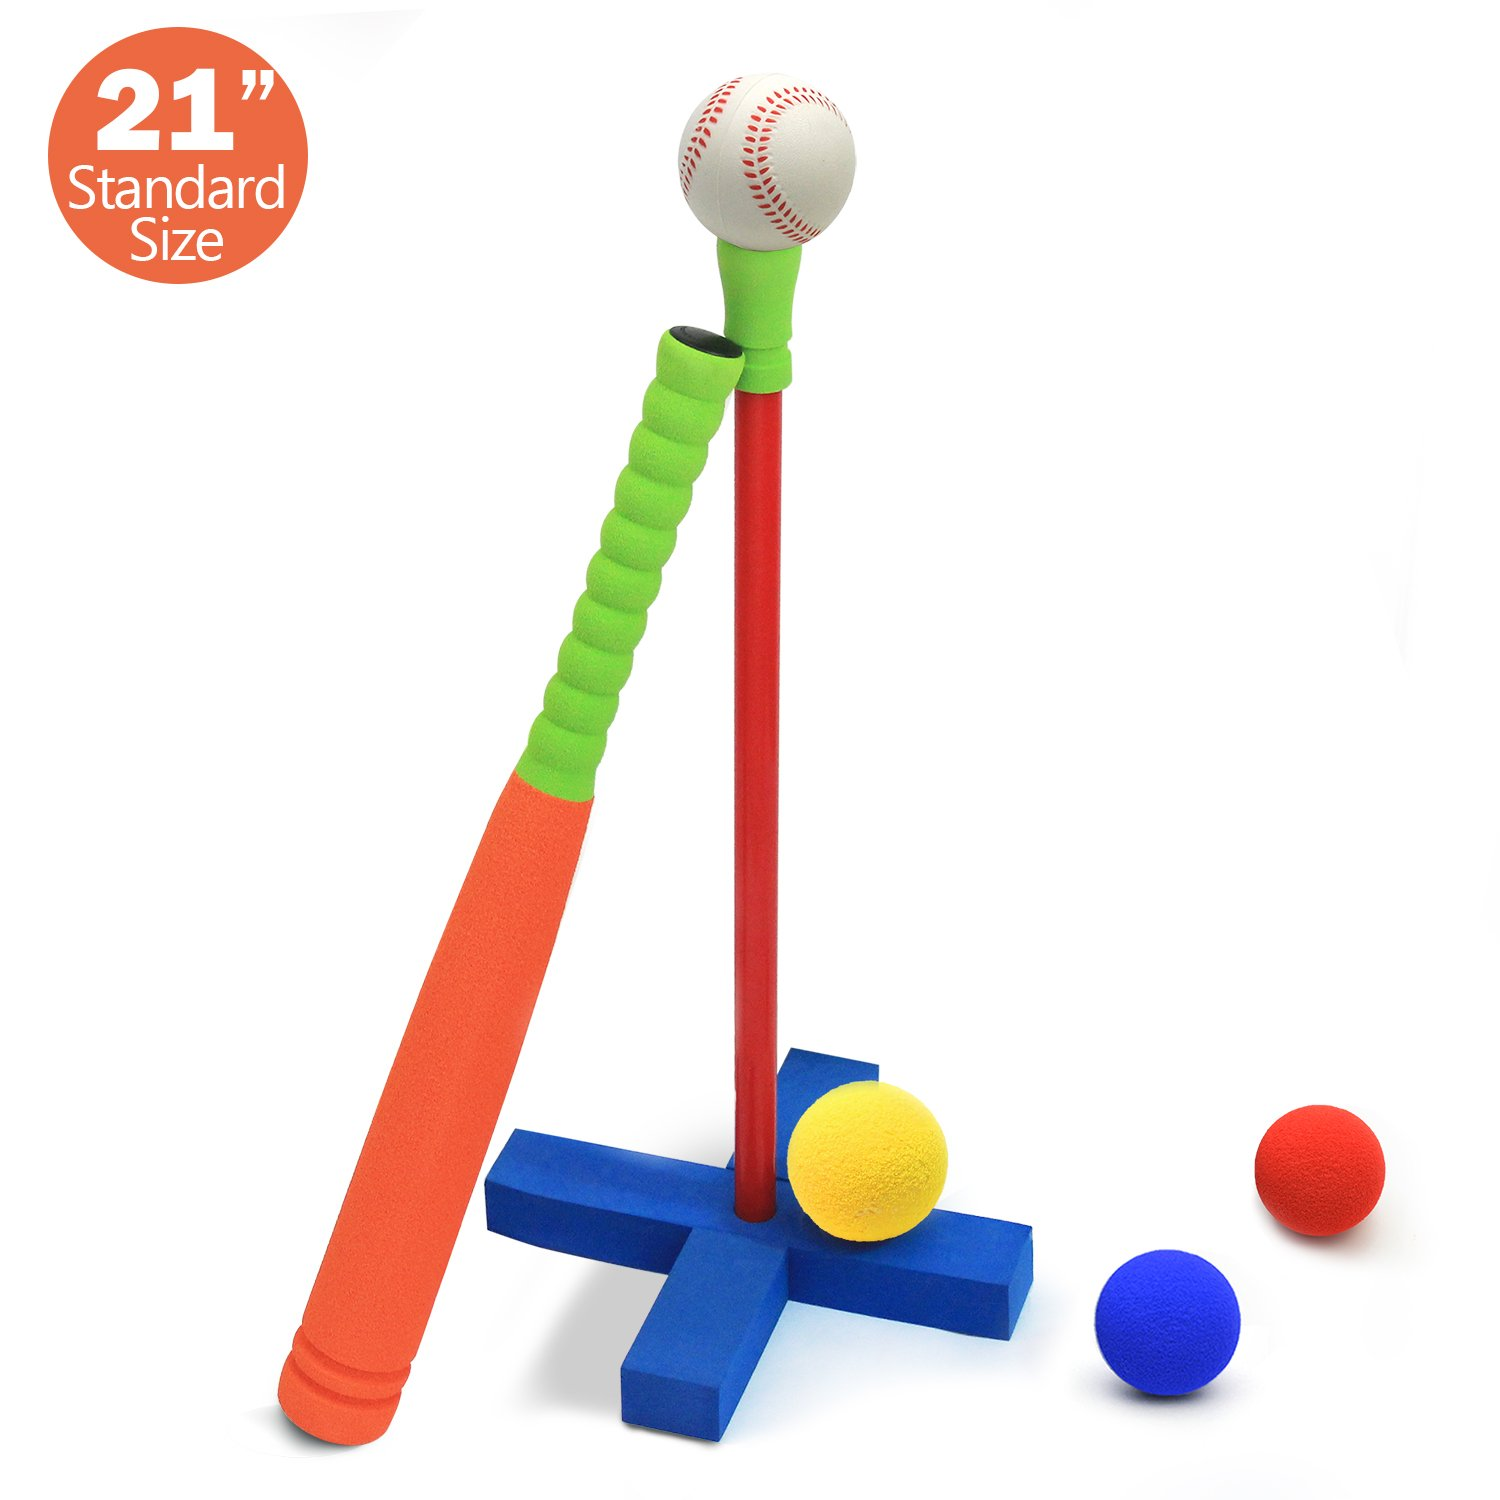 CELEMOON 21-Inch Kids Soft Foam T Ball Baseball Set Toy, 4 Different Colored Balls, Carry/Organize Bag Included, for Kids Over 3 Years Old by CELEMOON